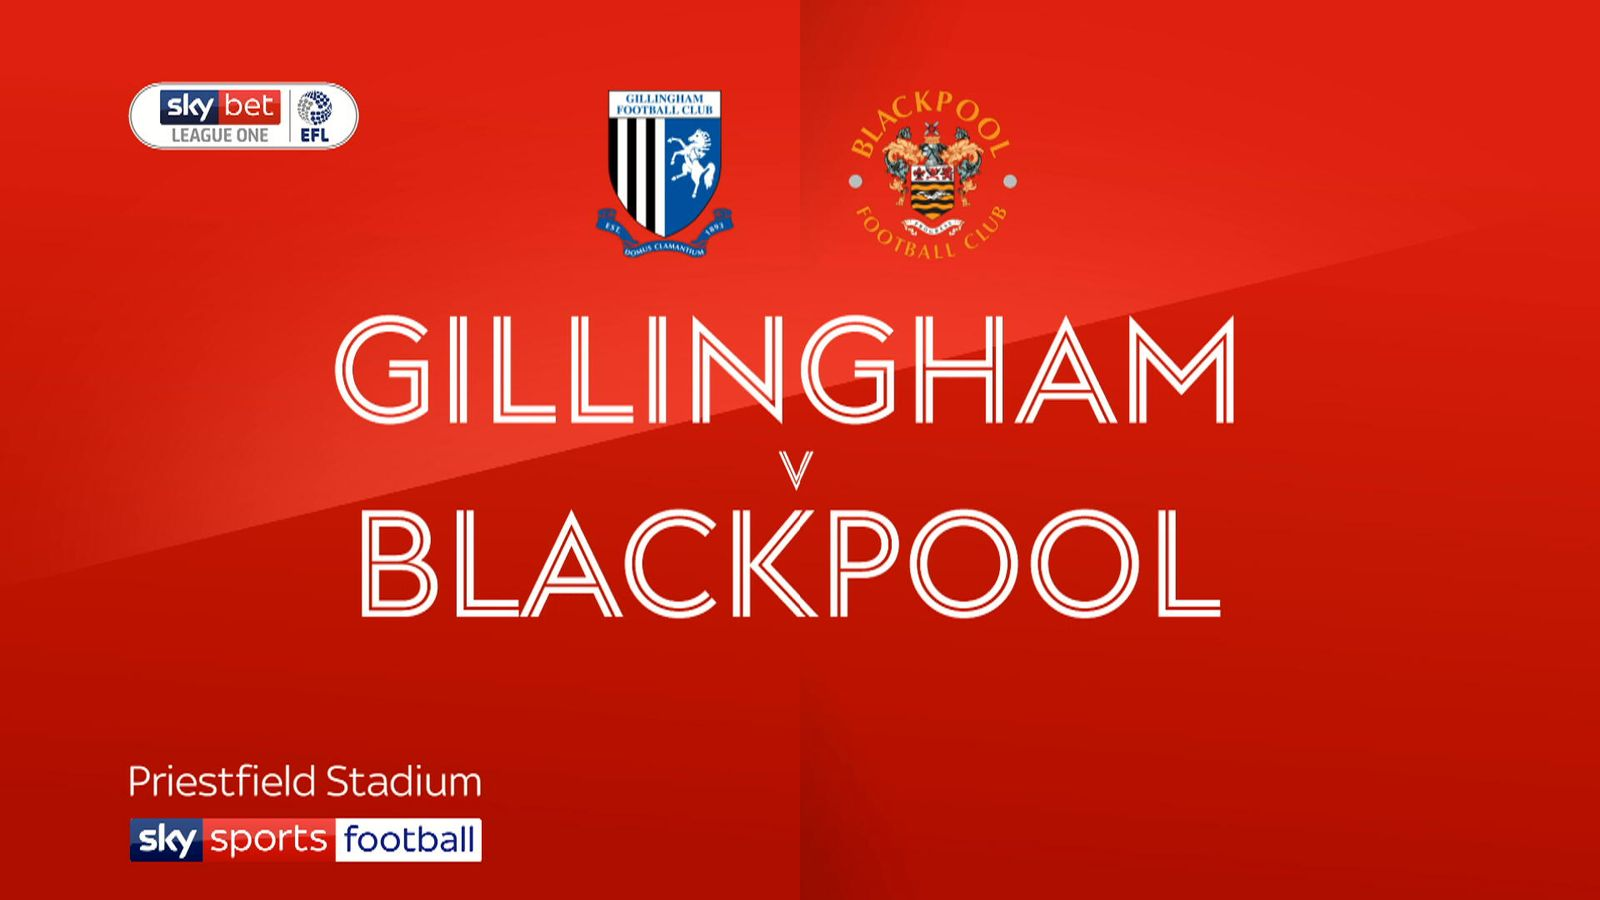 Gillingham vs colchester betting preview nfl spread betting forex uk tax codes